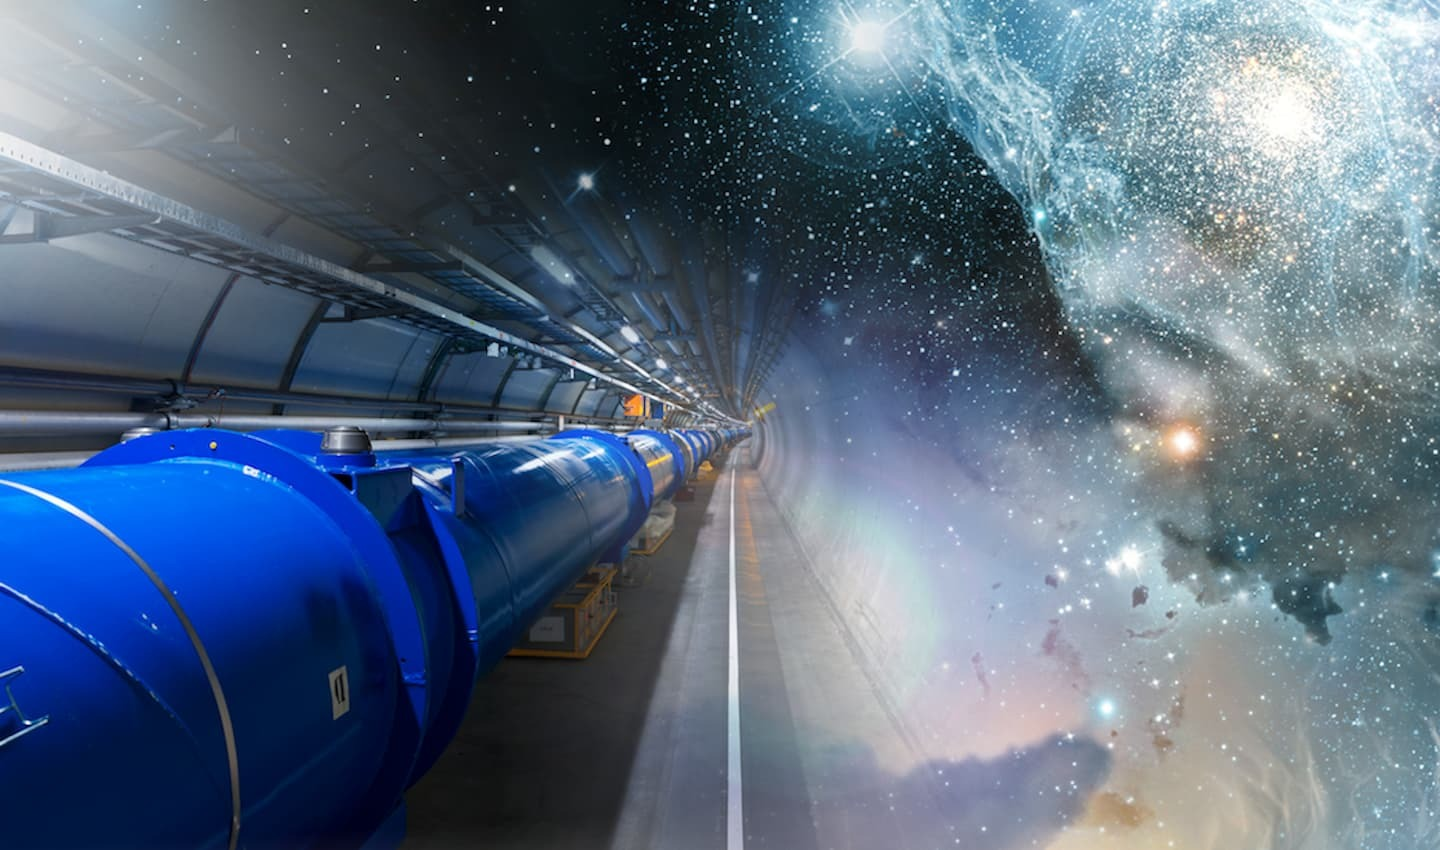 A hybrid image of the LHC and space